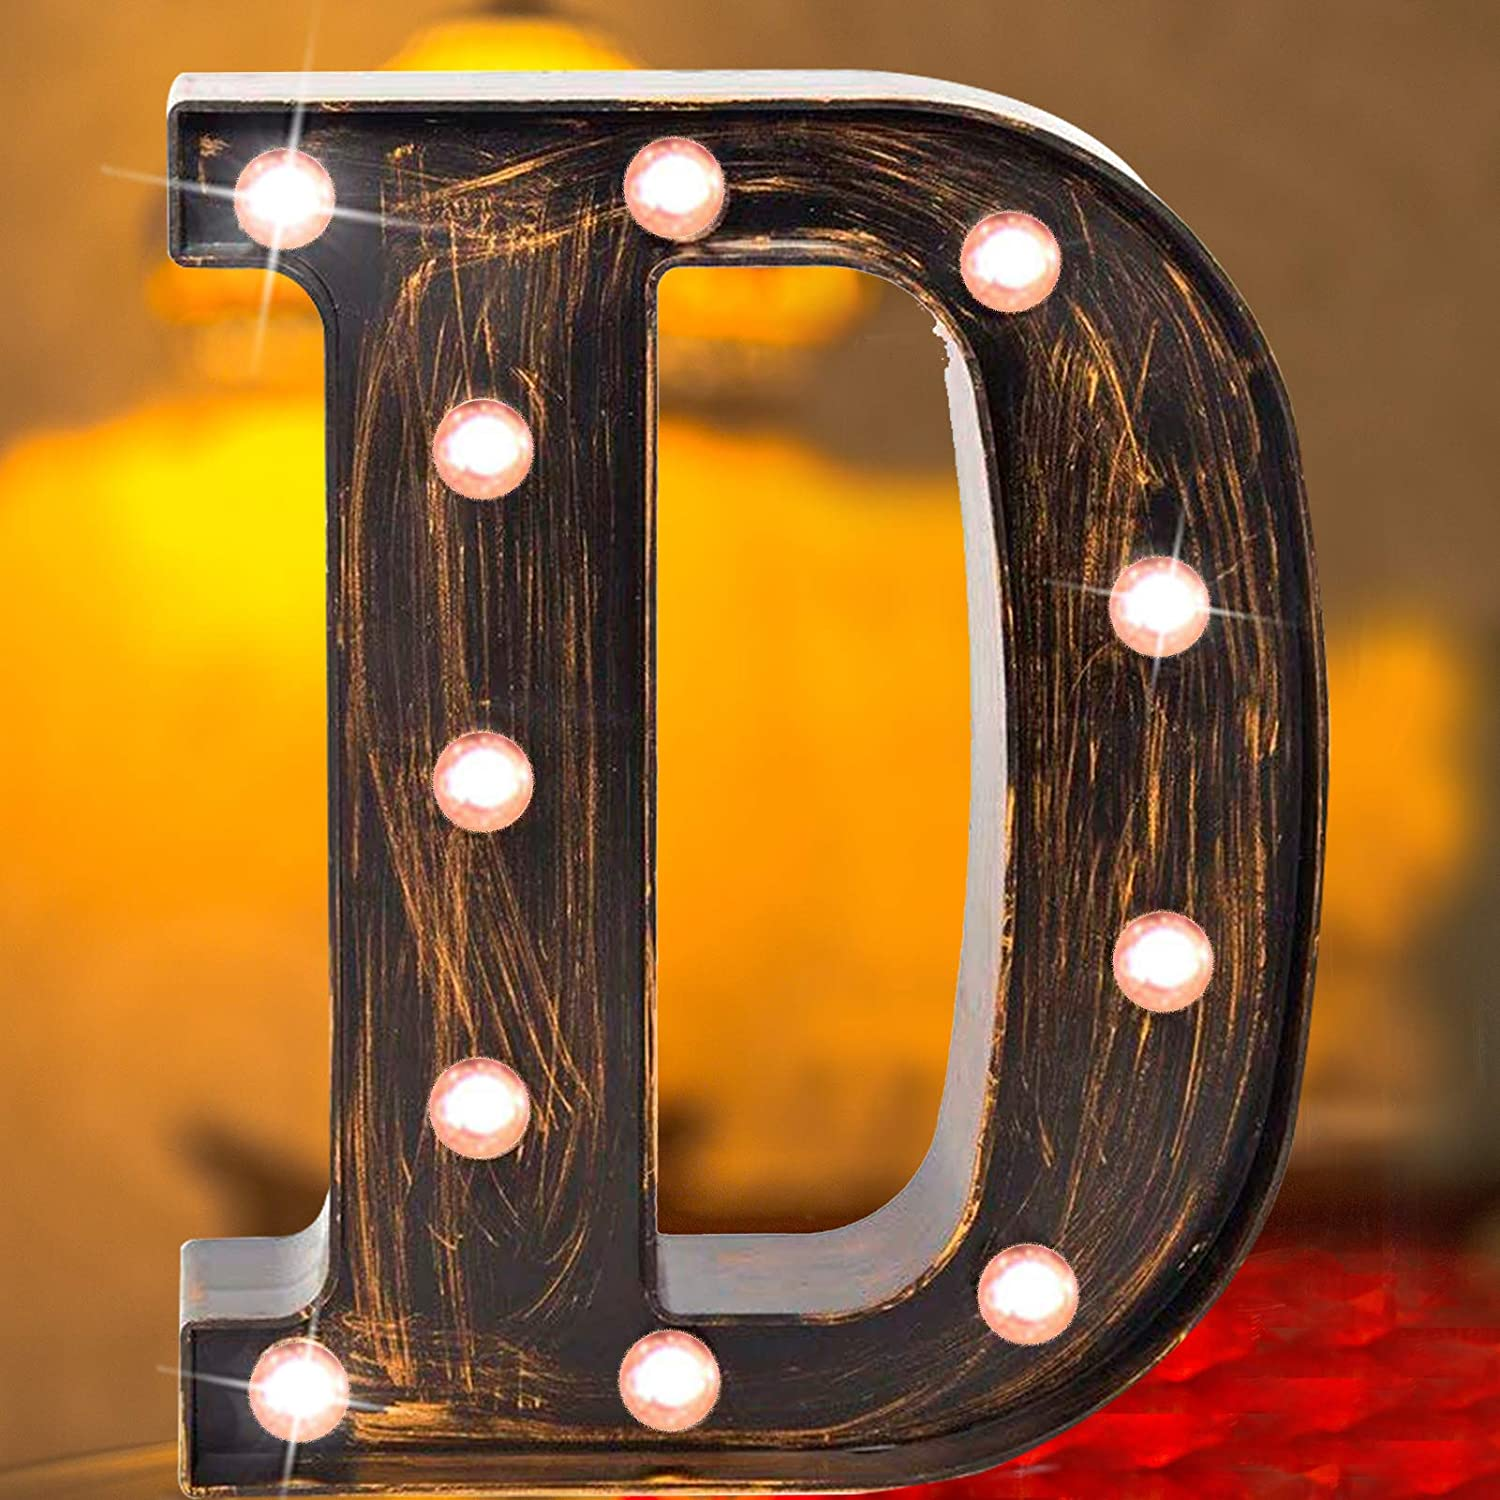 Elnsivo Vintage LED Marquee Letter Lights Light Up Industrial 26 Alphabet Rustic Letters Signs Bar Cafe Initials Decor for Birthday Party Christmas Wedding Events(Letter D)